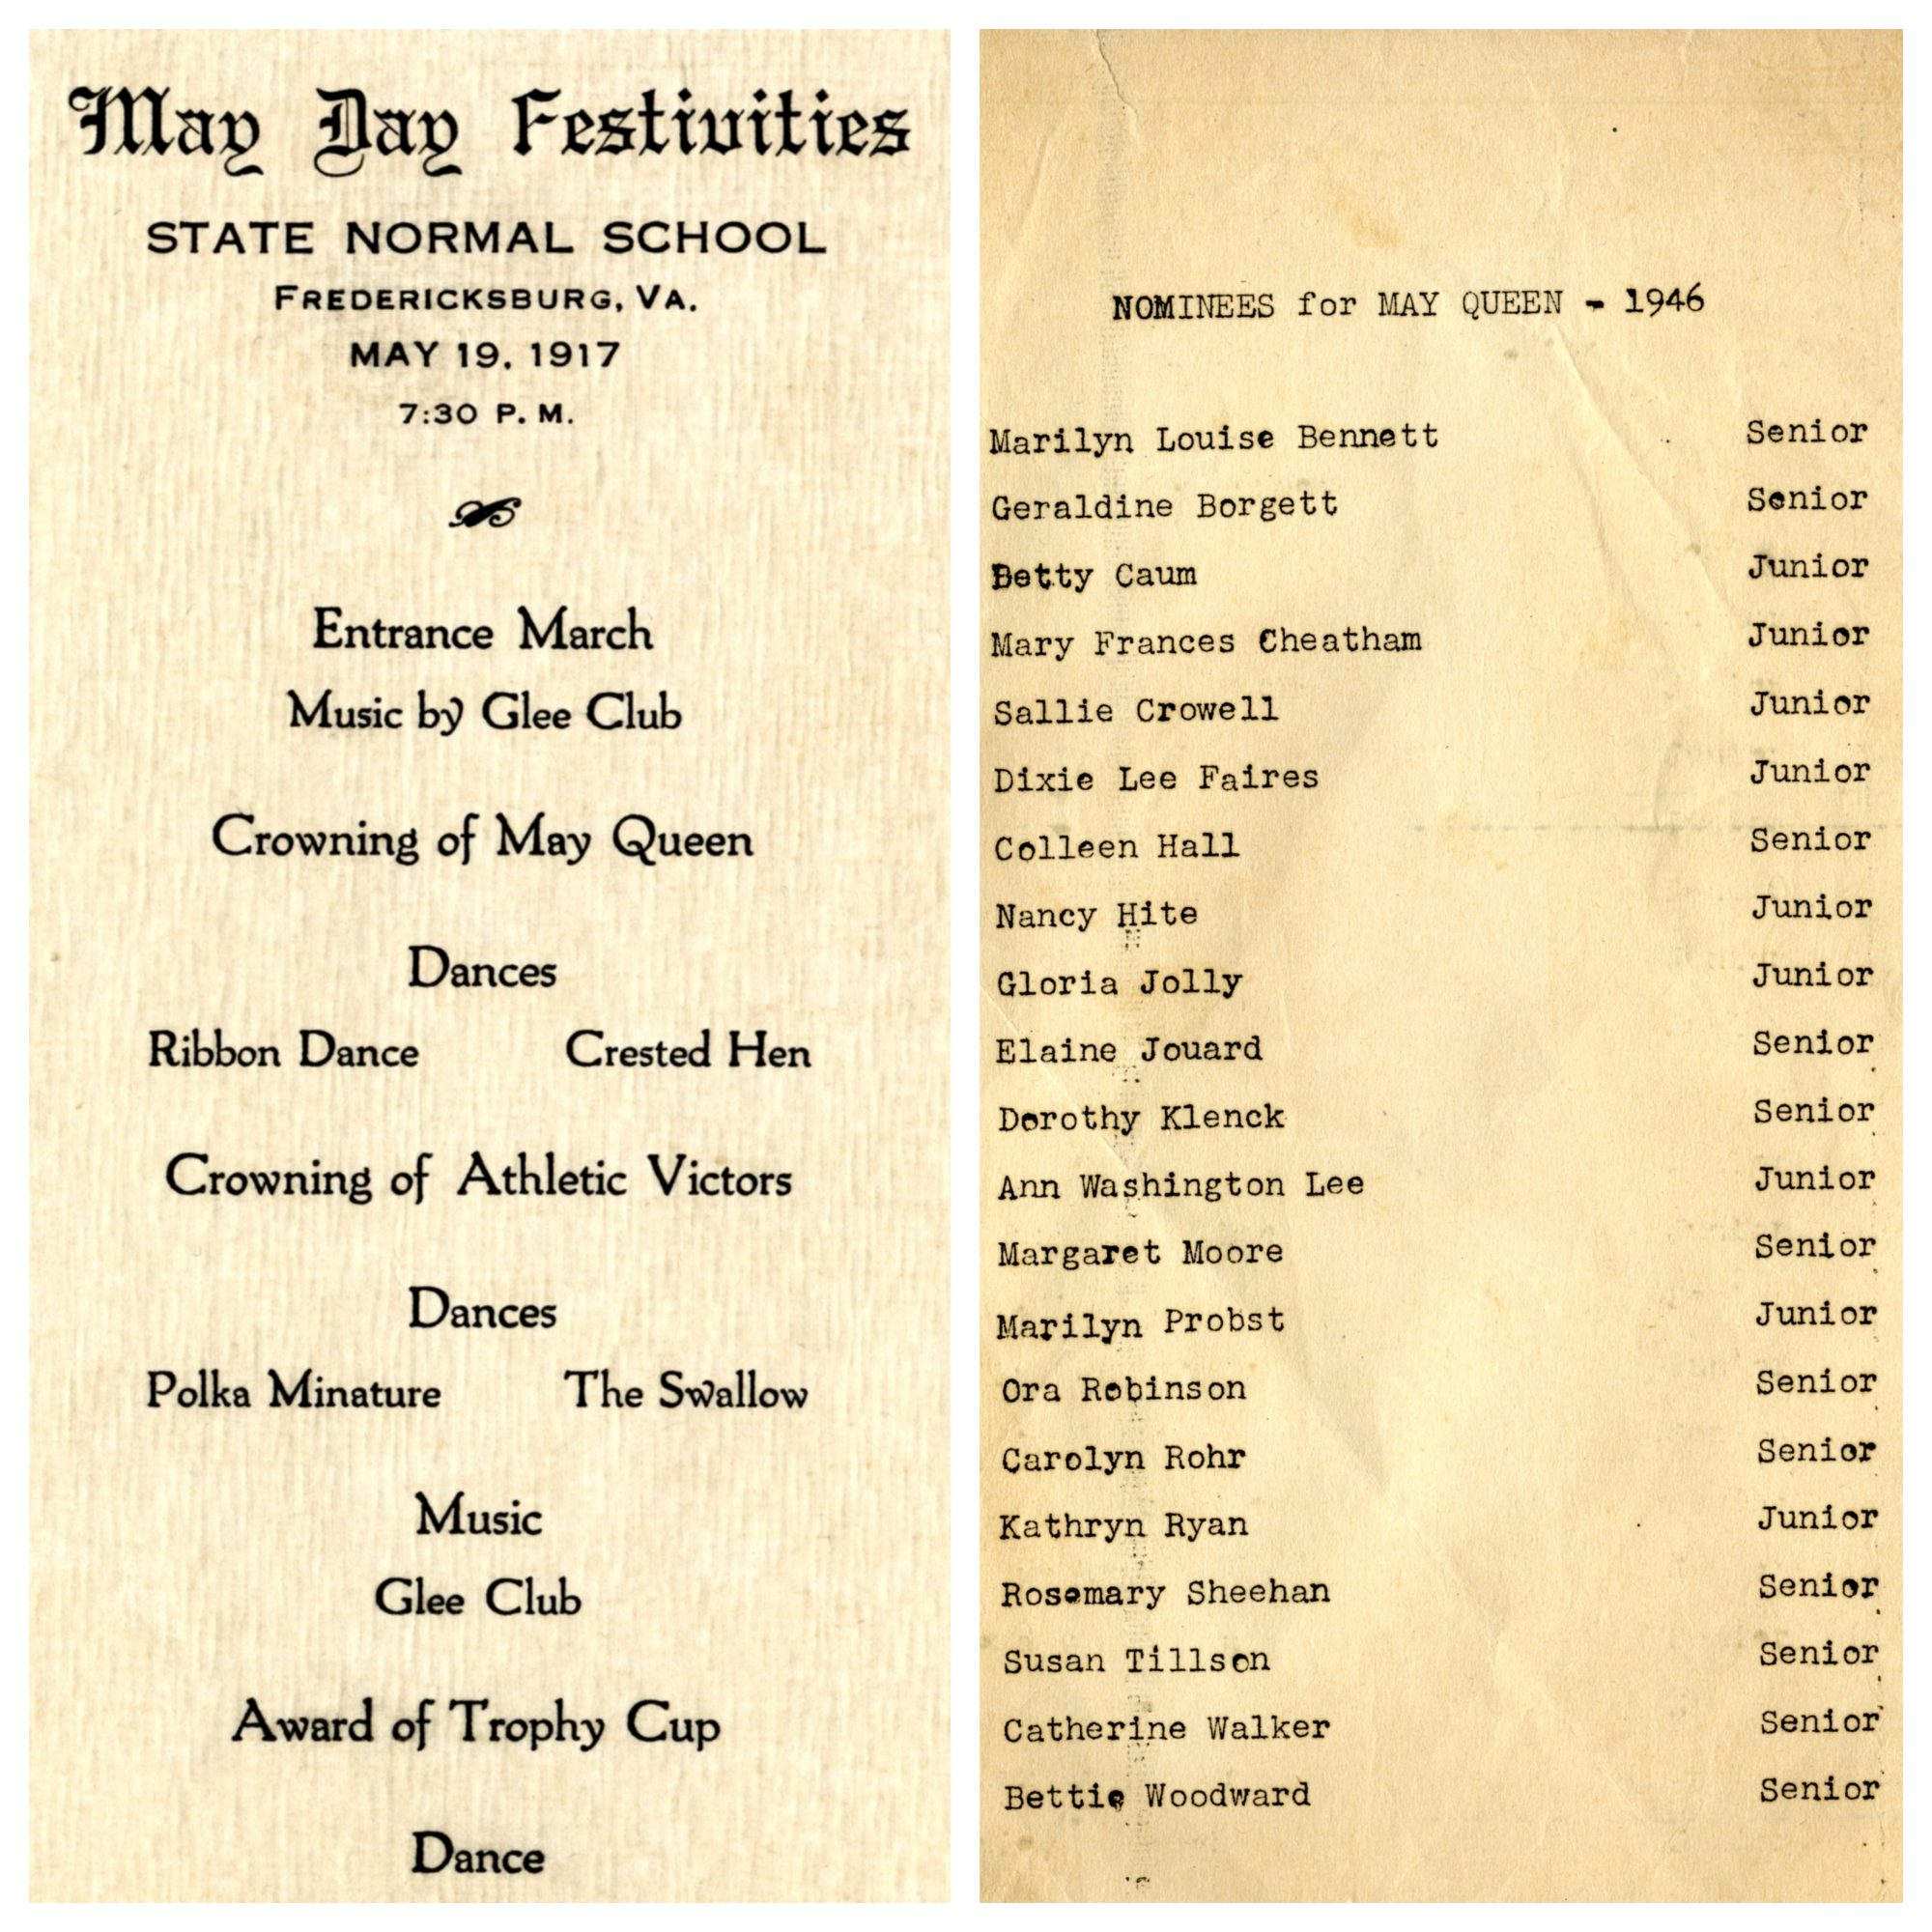 May Day Program, 1917 and list of student nominees